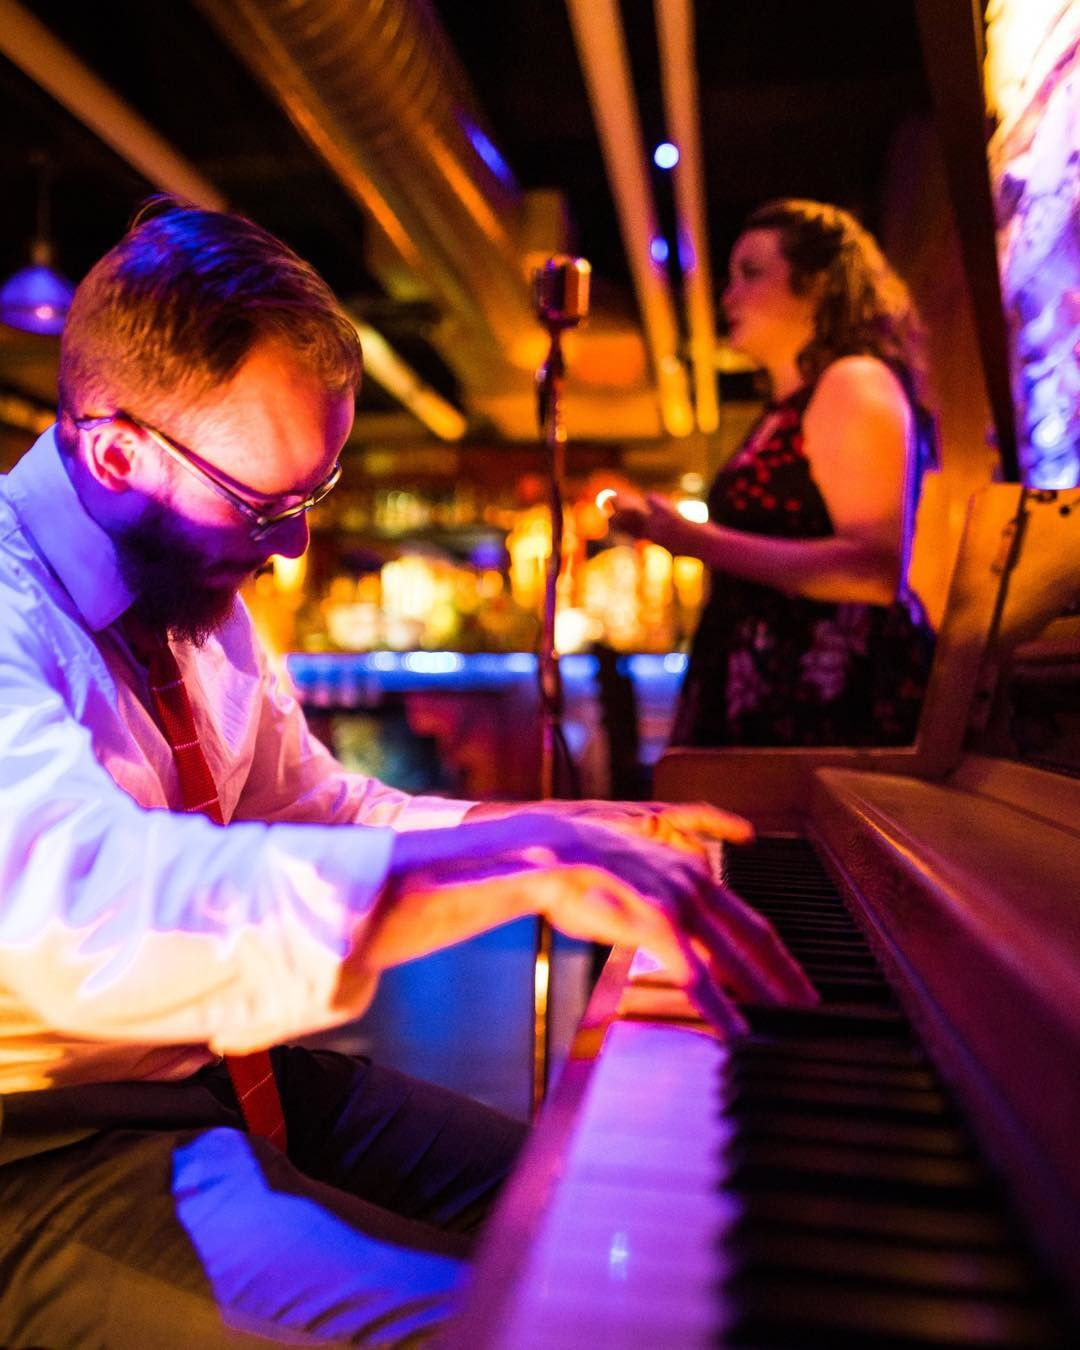 Sweetie belts the Blues and Chase will be tickling the ivory tonight! And if we're lucky, we will have yet another piano virtuoso